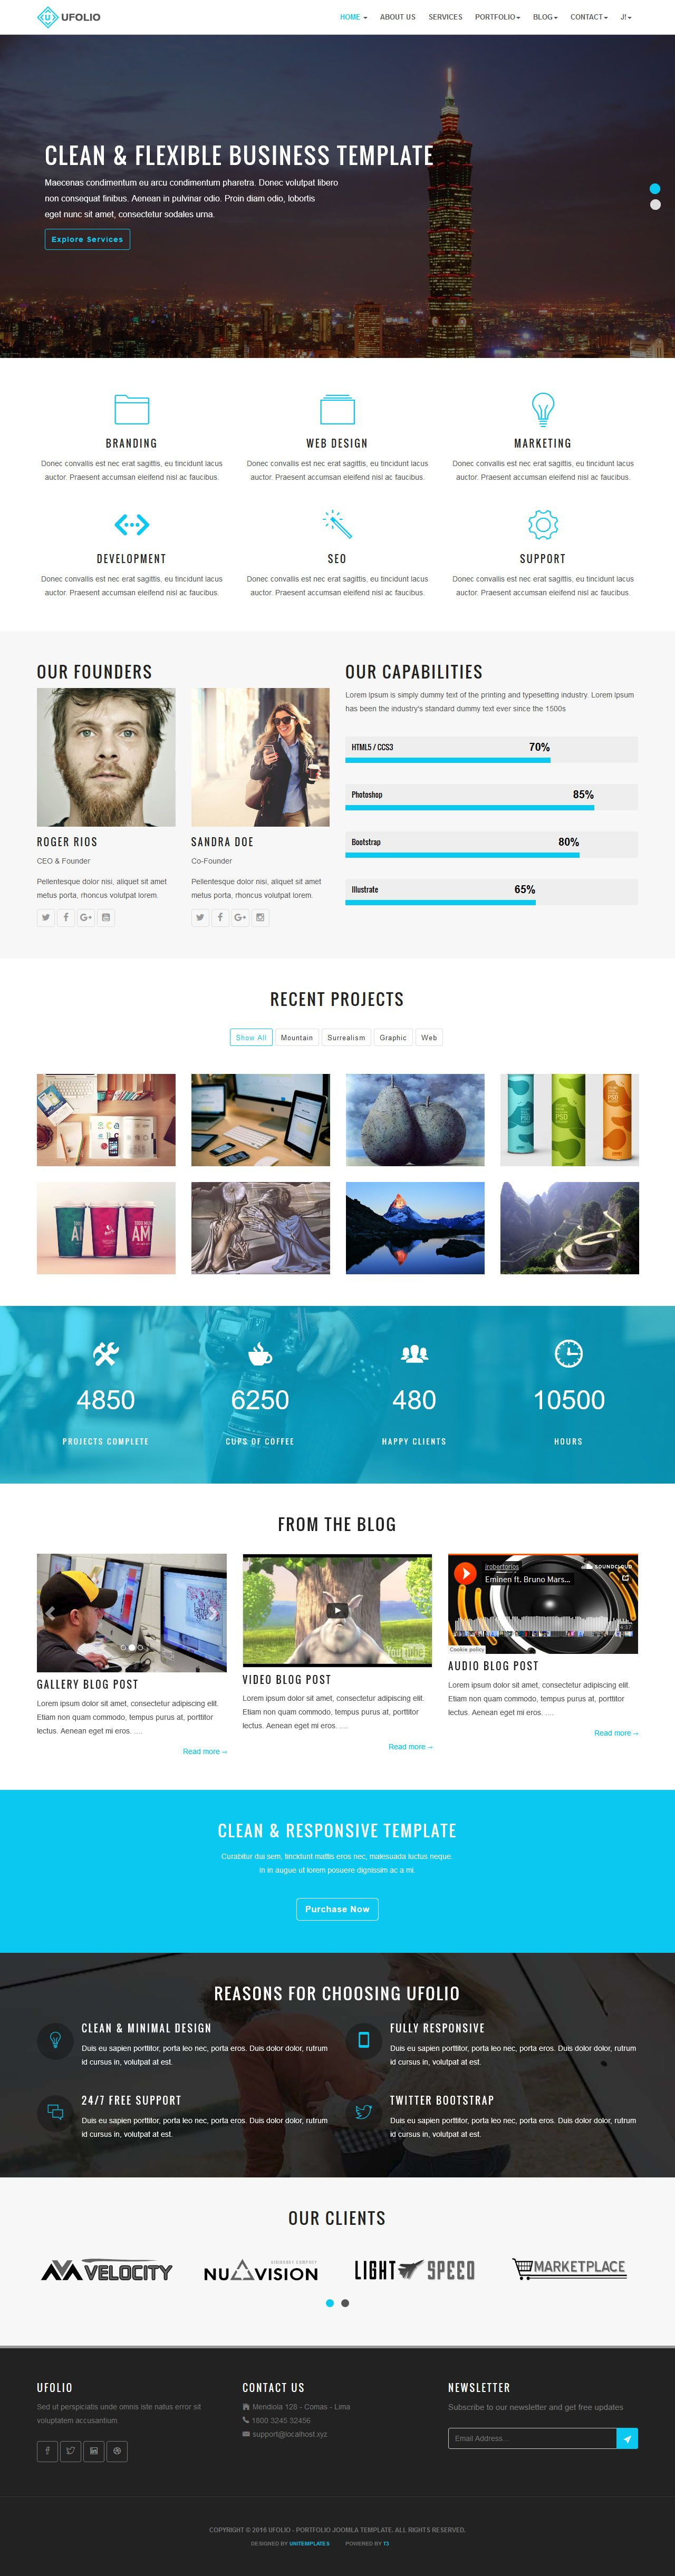 Ufolio - Portfolio Joomla Template Screenshot 2